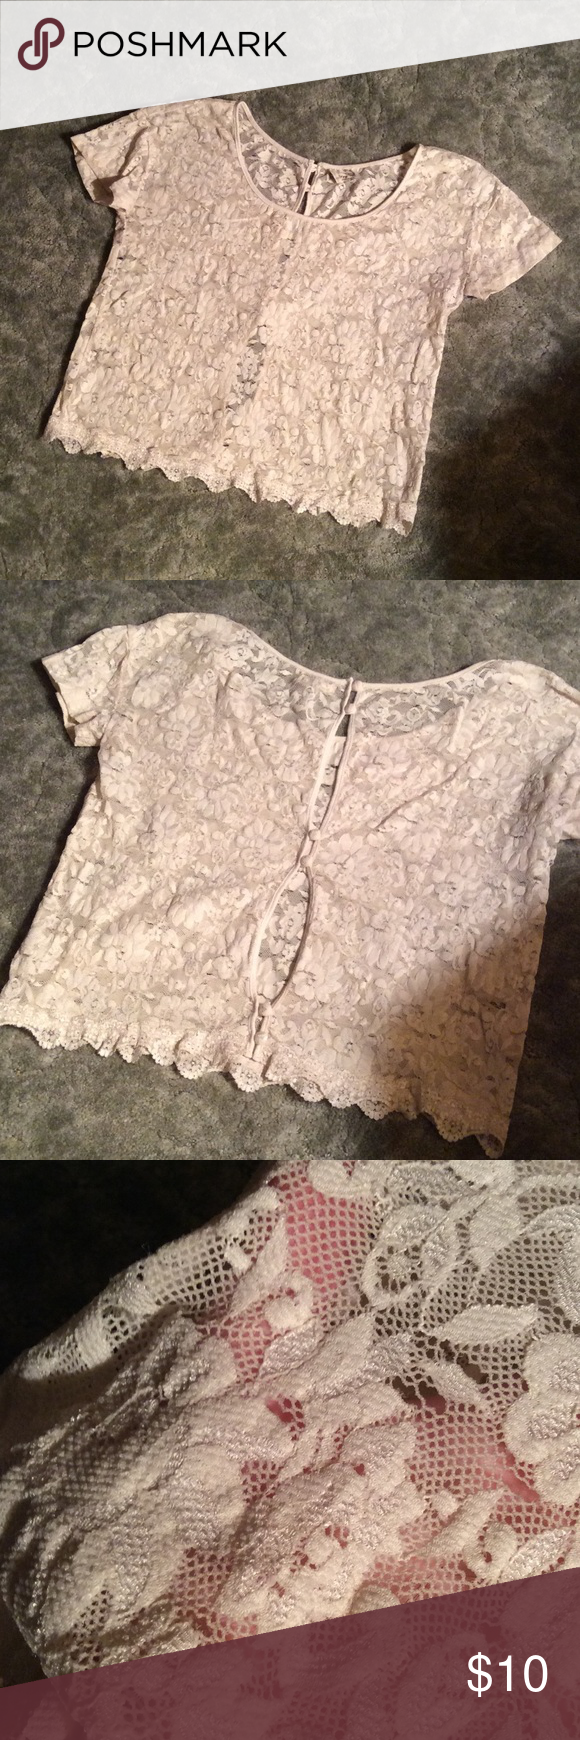 Kirra Lace Button-back Top Very trendy lace shirt with adorable buttons down the back. There appear to be some tears in the lace, which is reflected in the price. I got this shirt for free, so feel free to make an offer! Kirra Tops Blouses